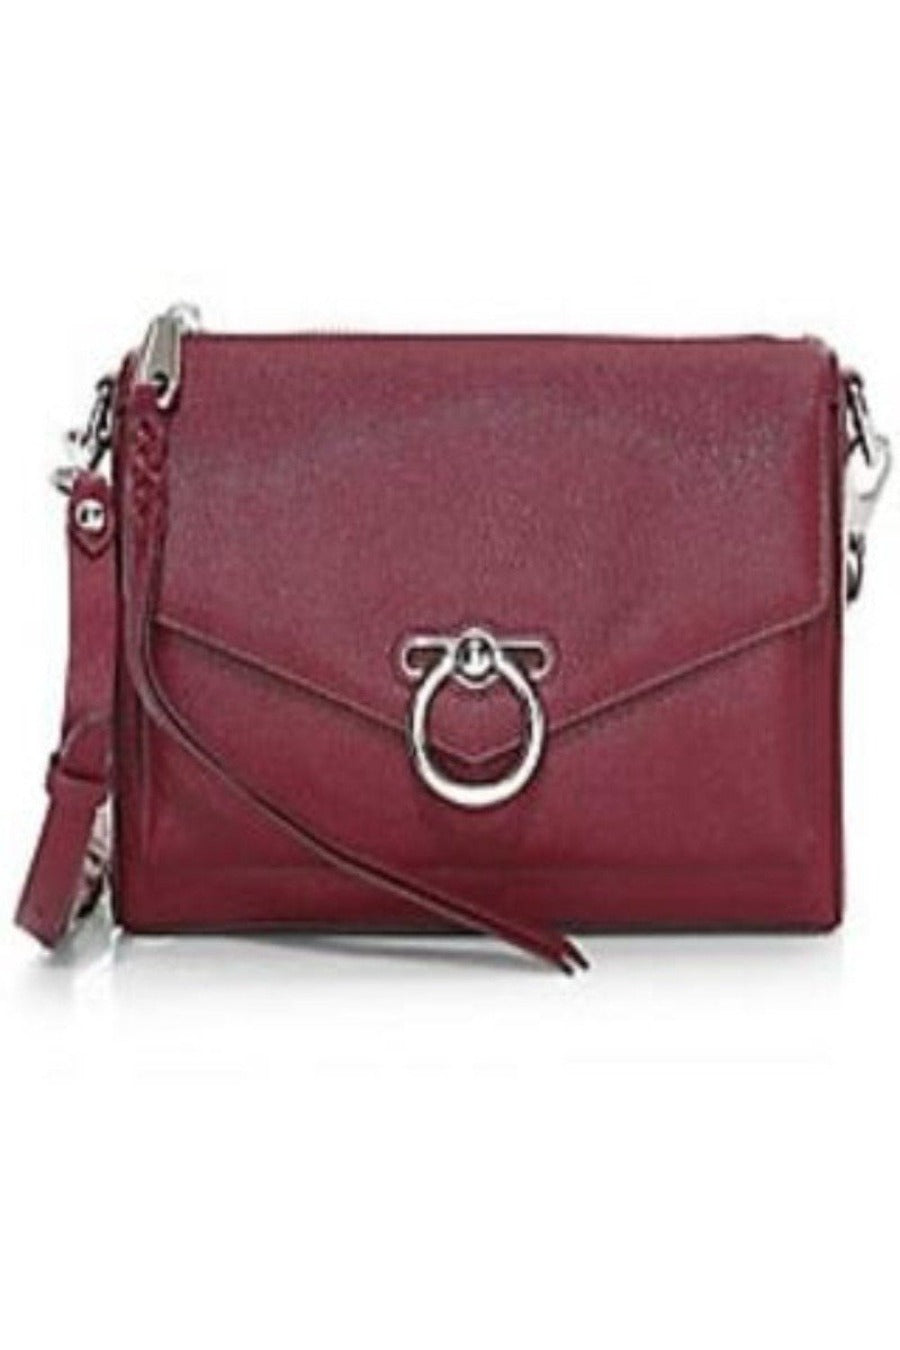 REBECCA MINKOFF - JEAN MAC CROSSBODY IN PINOT NOIR